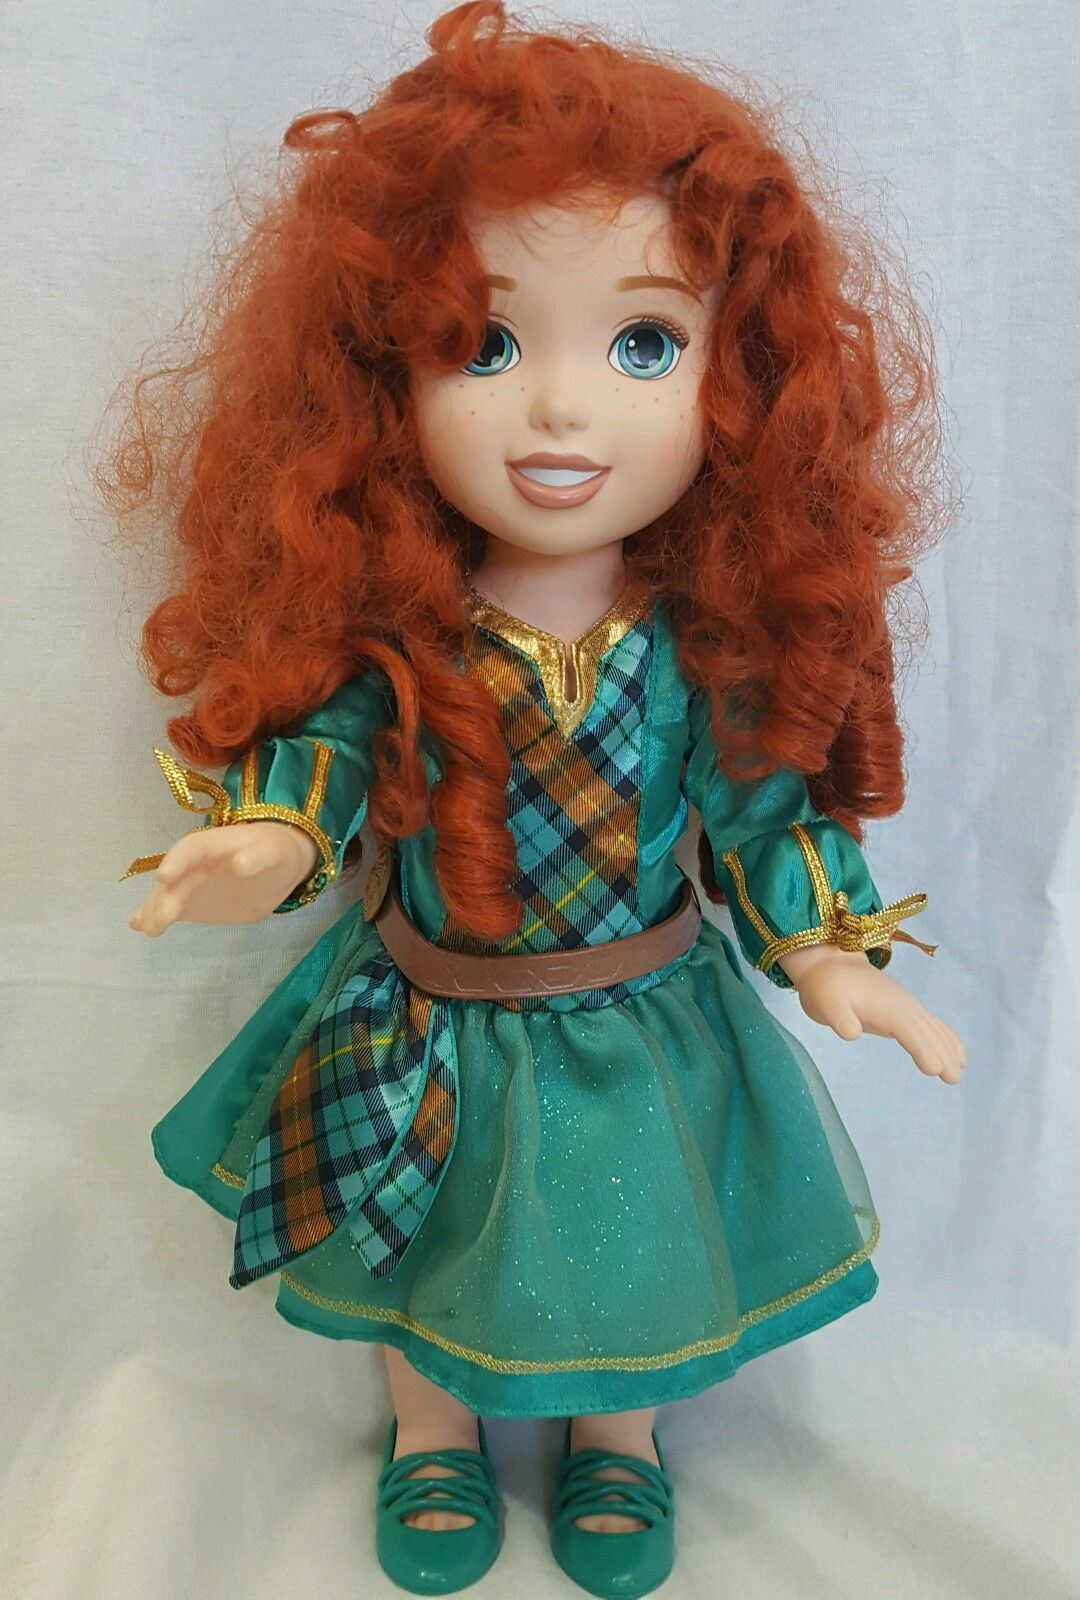 Disney's Brave Tollytots Meridia Doll Dressed 15 Inches Tall